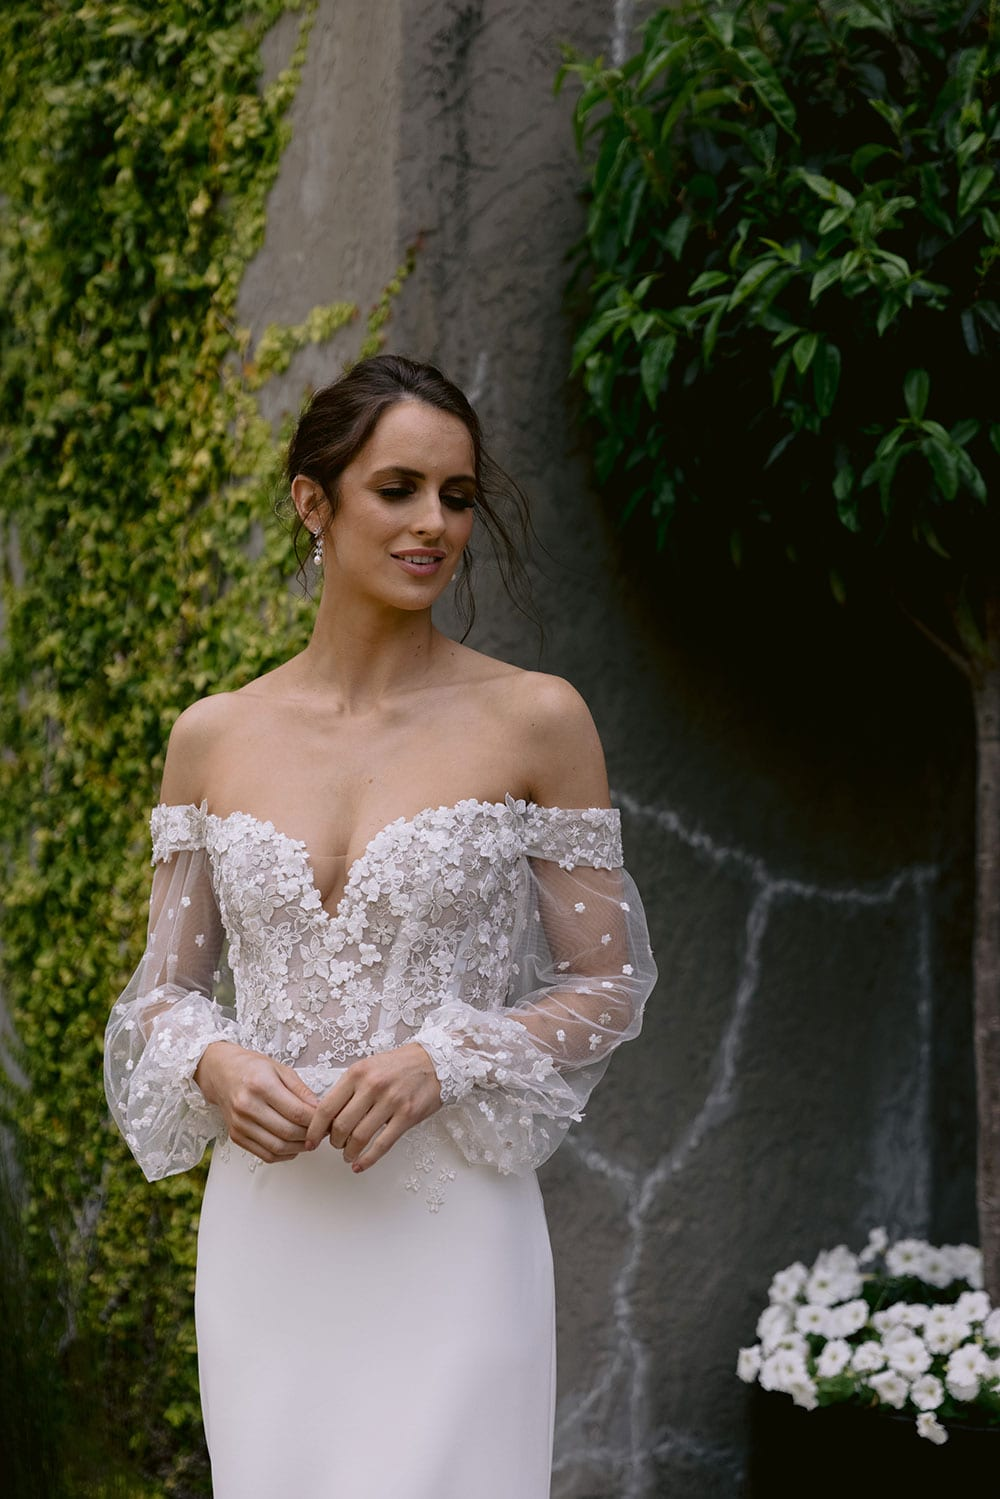 Chloe Wedding gown from Vinka Design - Wedding gown with 3D embellished platinum and ivory flower lace, complemented by stunning off-shoulder straps. A semi-sheer bodice trails into a gorgeous stretch crepe skirt that hugs the figure in all the right places. Model wearing gown in gardens.